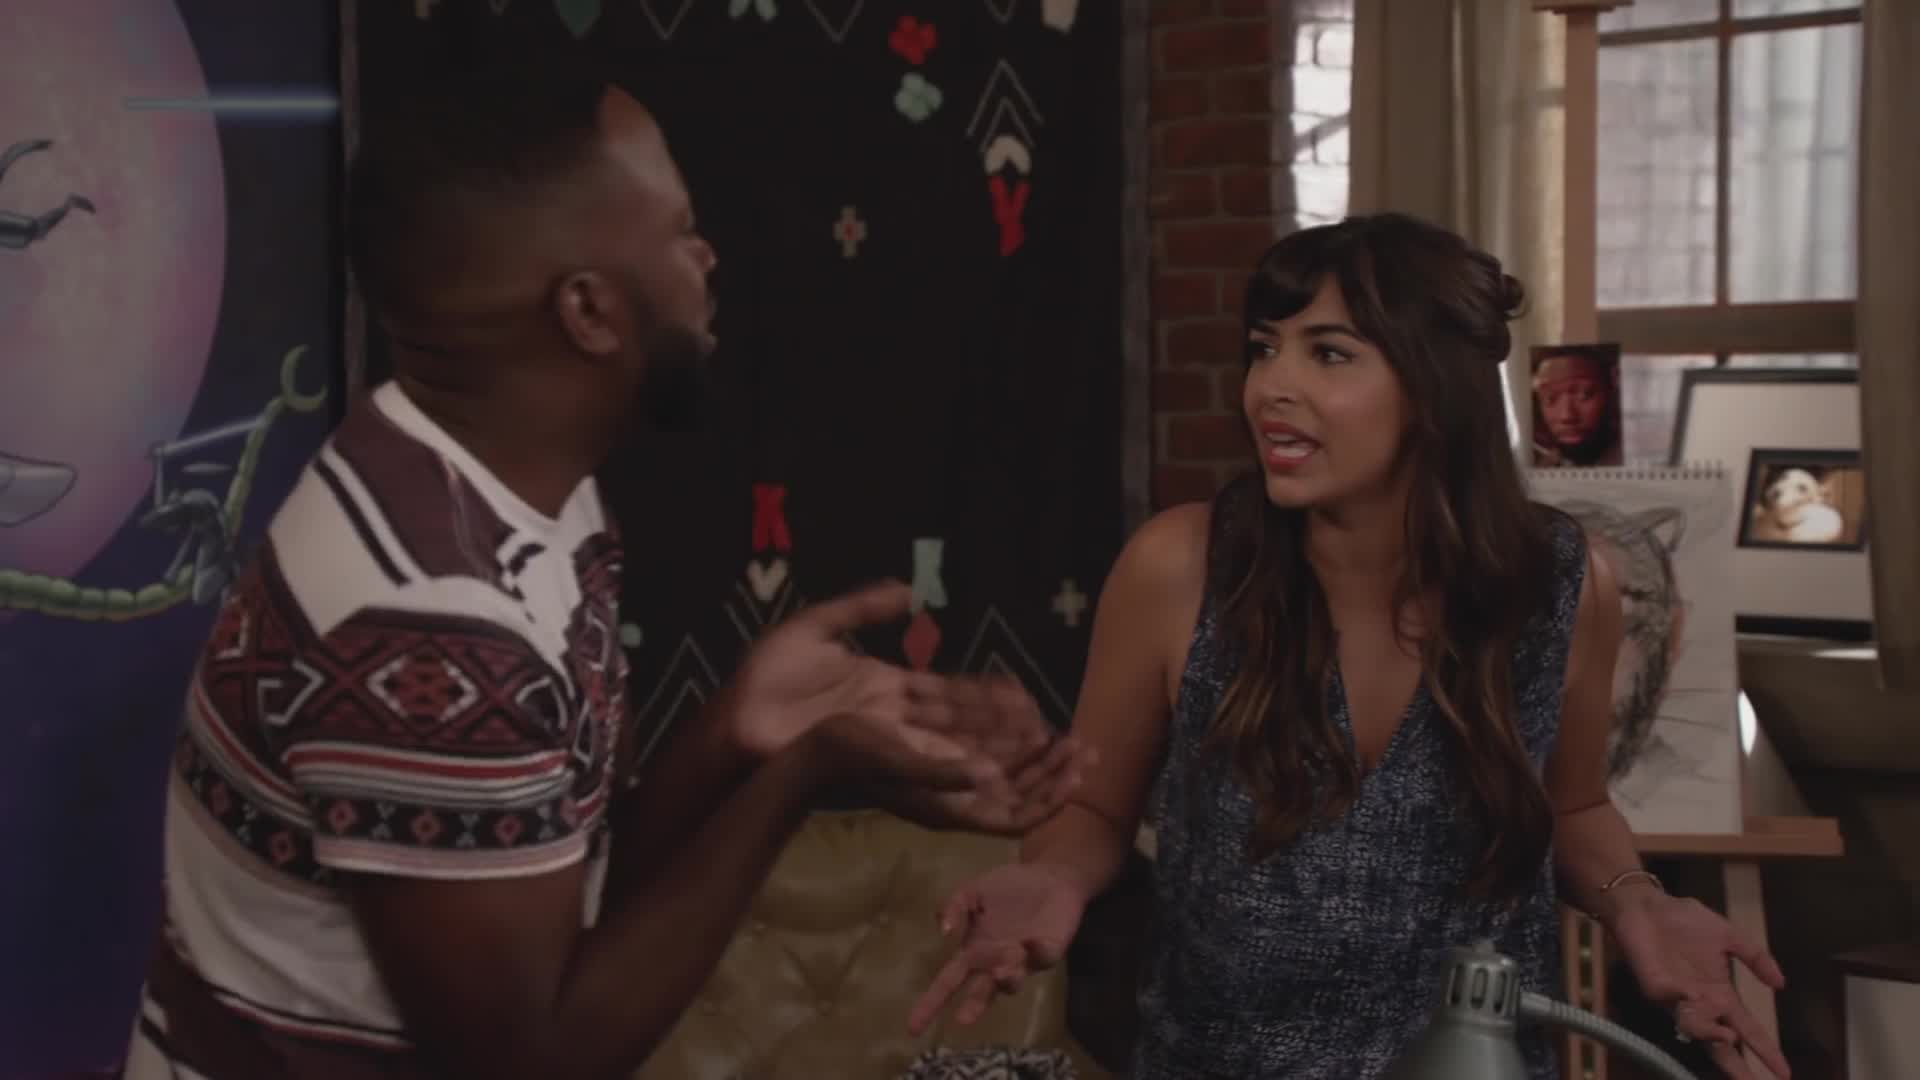 New Girl: Winston And Cece Create An Edm Song